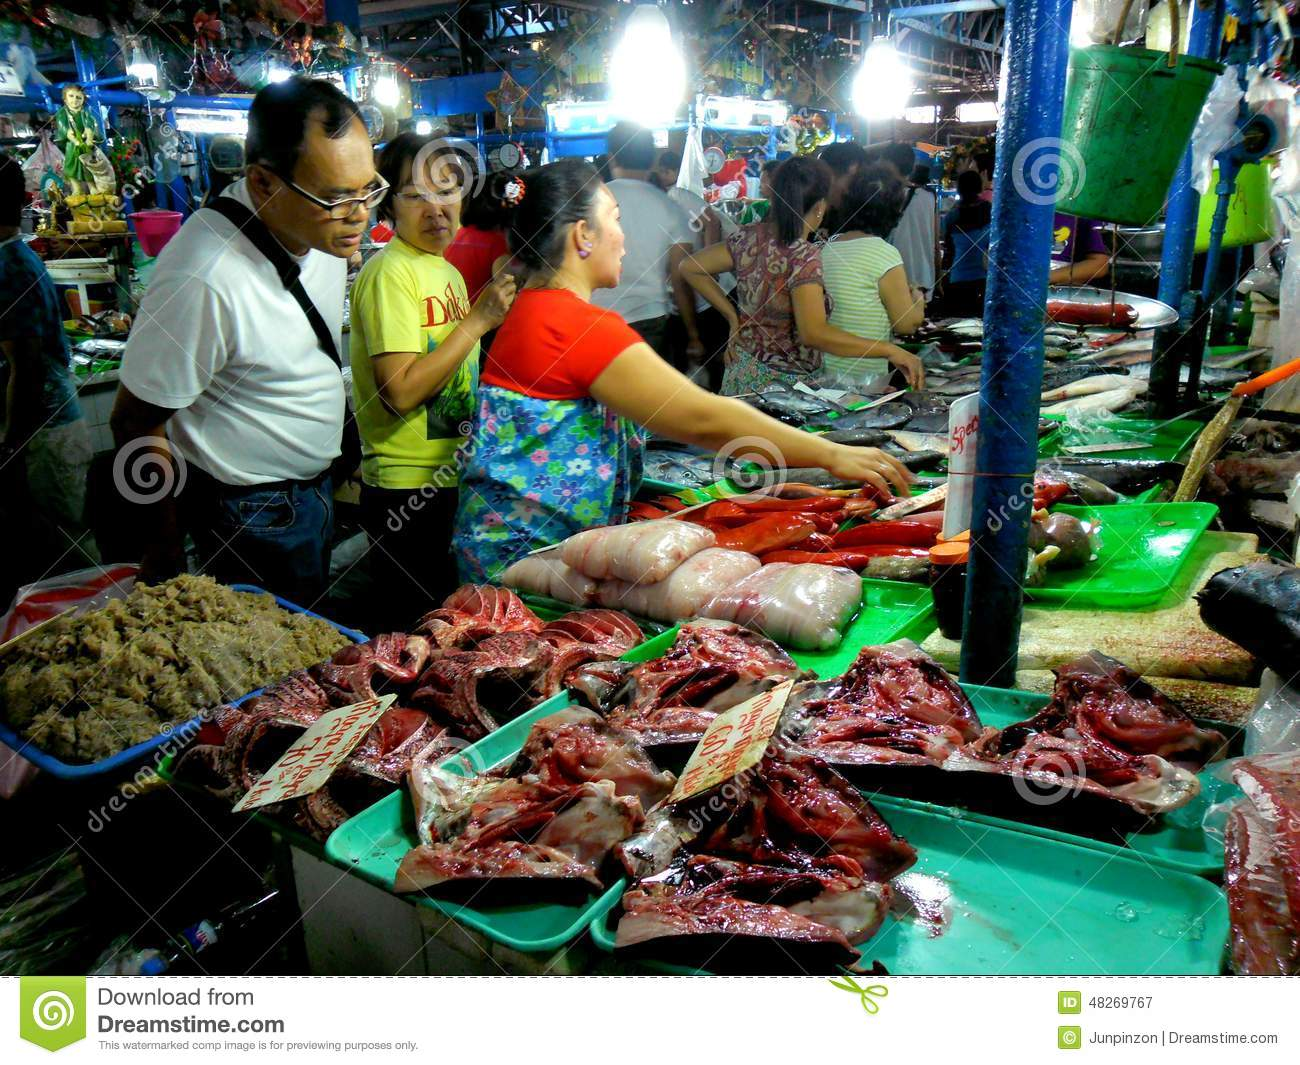 ... wet market in cubao , quezon city, philippines Editorial Photography: www.dreamstime.com/editorial-photography-meat-fish-vendor-wet...